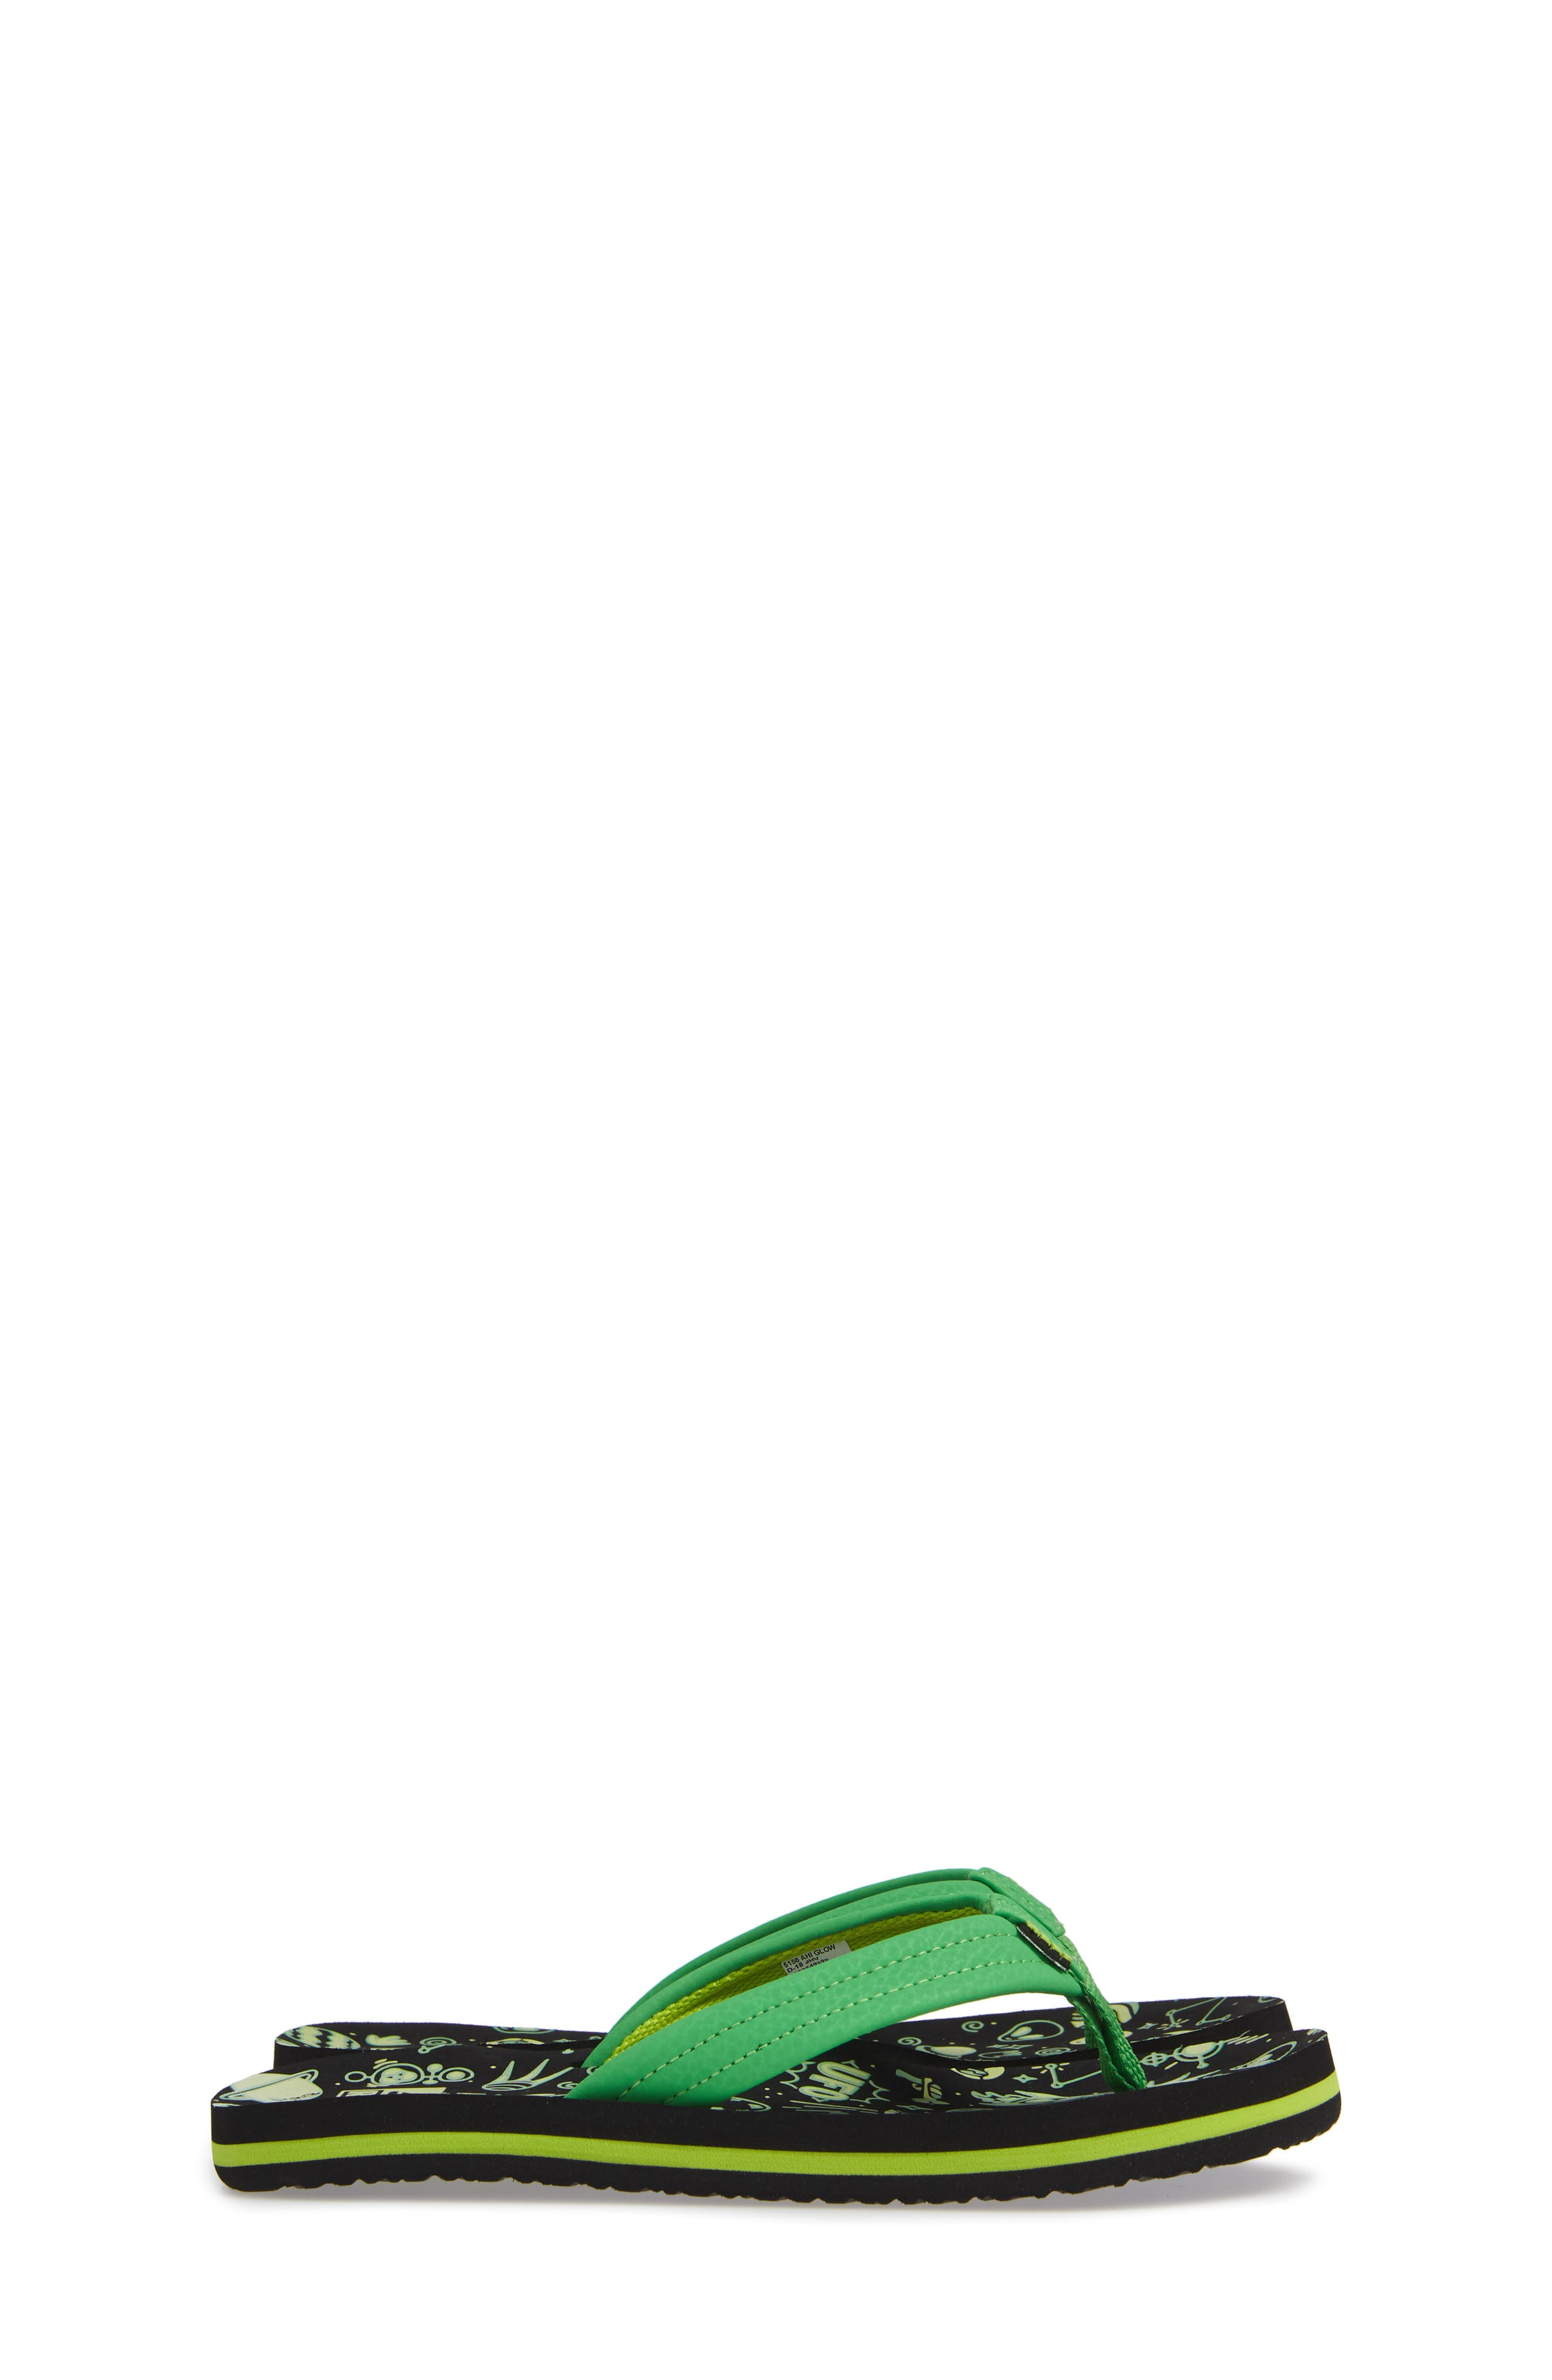 Ahi Glow in the Dark Flip Flop,                             Alternate thumbnail 4, color,                             GREEN